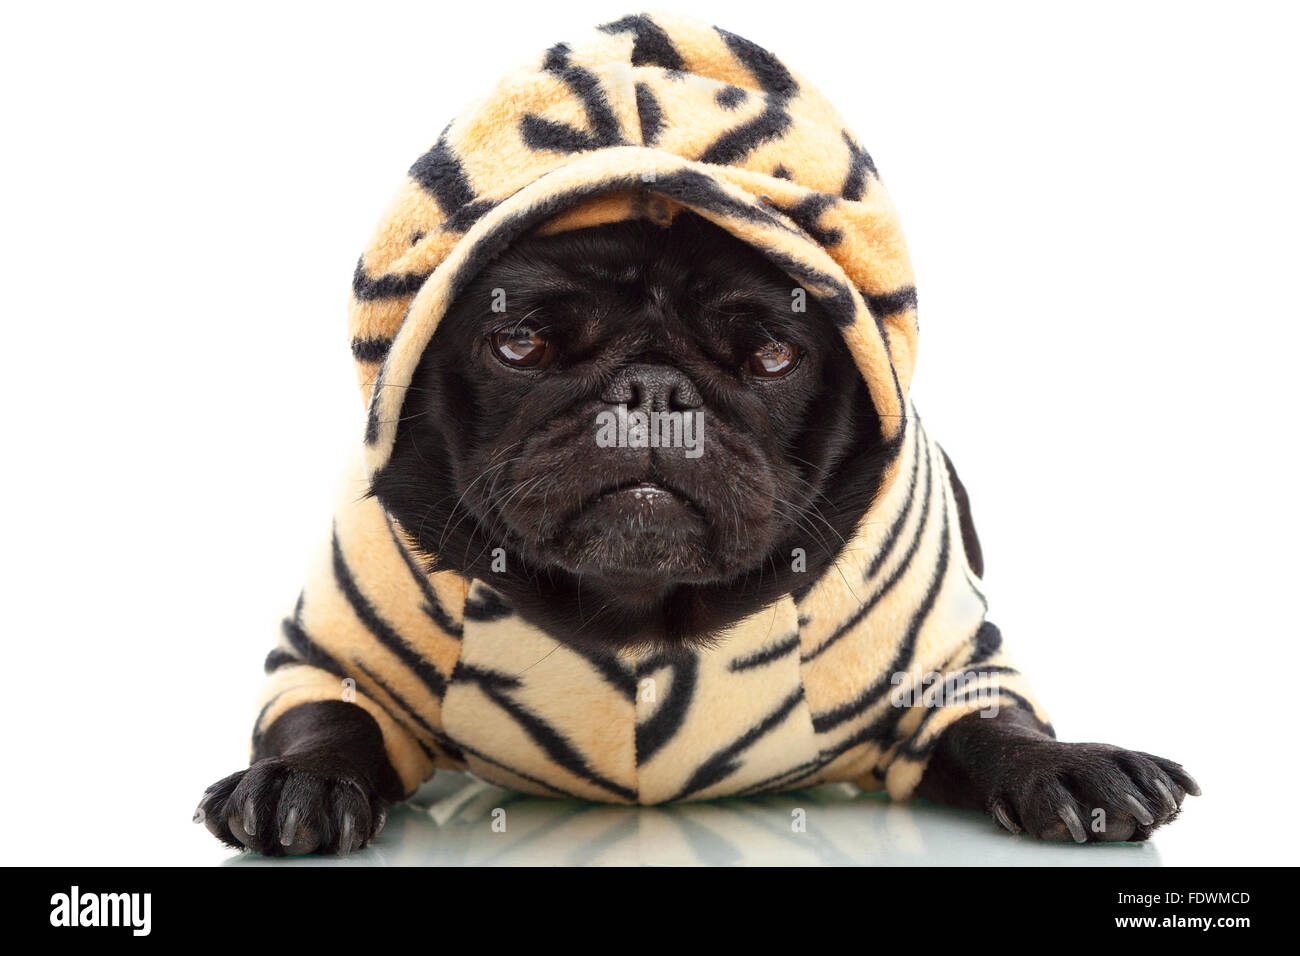 Portrait of black pug puppy dog in tiger print pet clothing outfit isolated on white background  sc 1 st  Alamy & Portrait of black pug puppy dog in tiger print pet clothing outfit ...